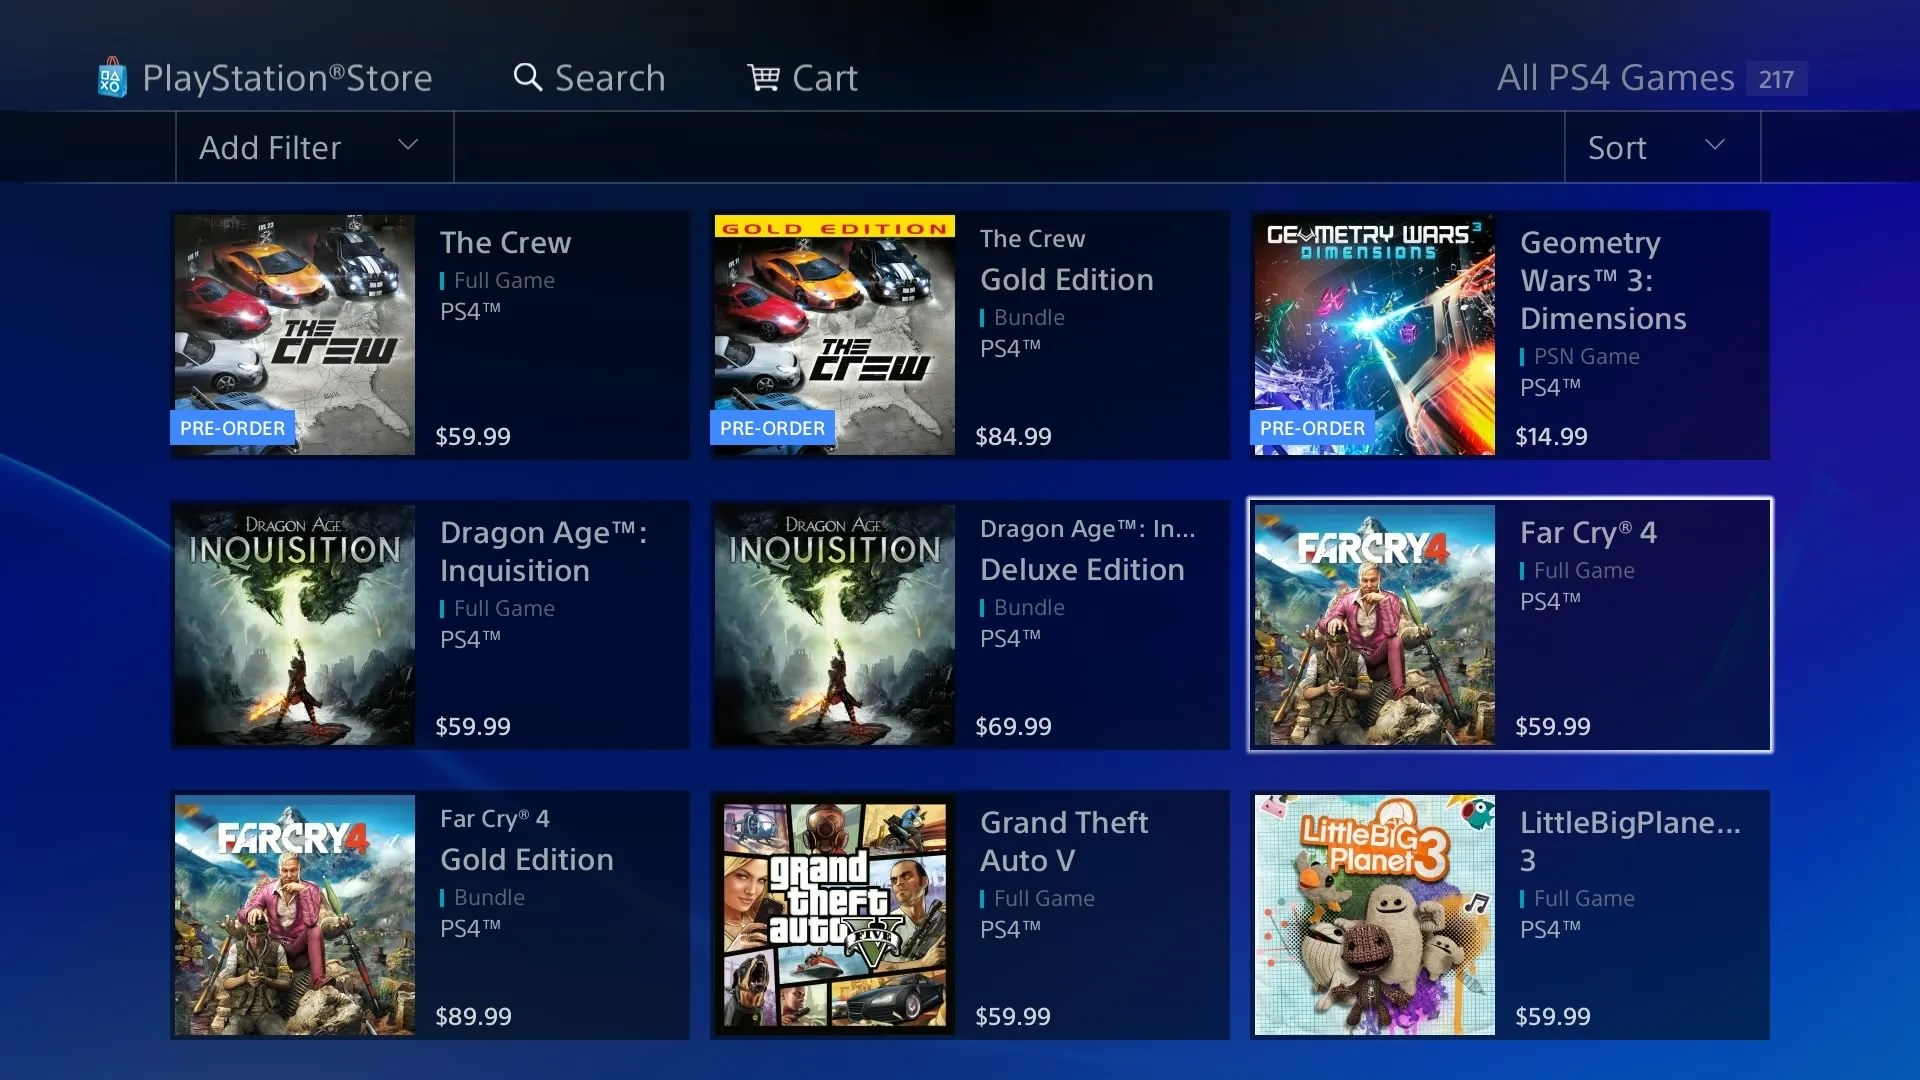 A Com Games On Ps4 : The problem with digital downloads on xbox one and ps